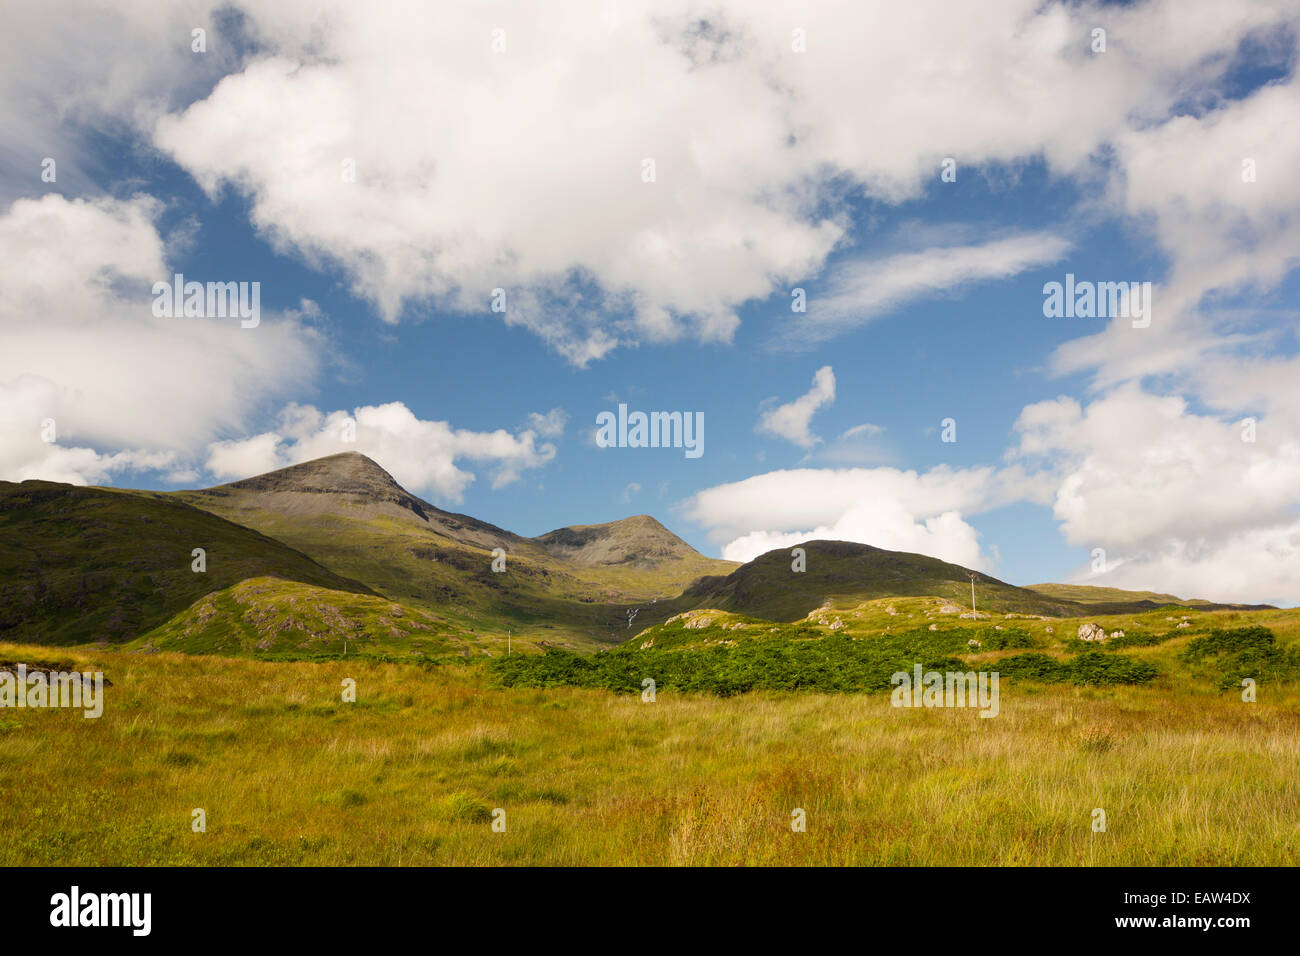 Ben More, a Munro on the Isle of Mull, Scotland, UK. - Stock Image